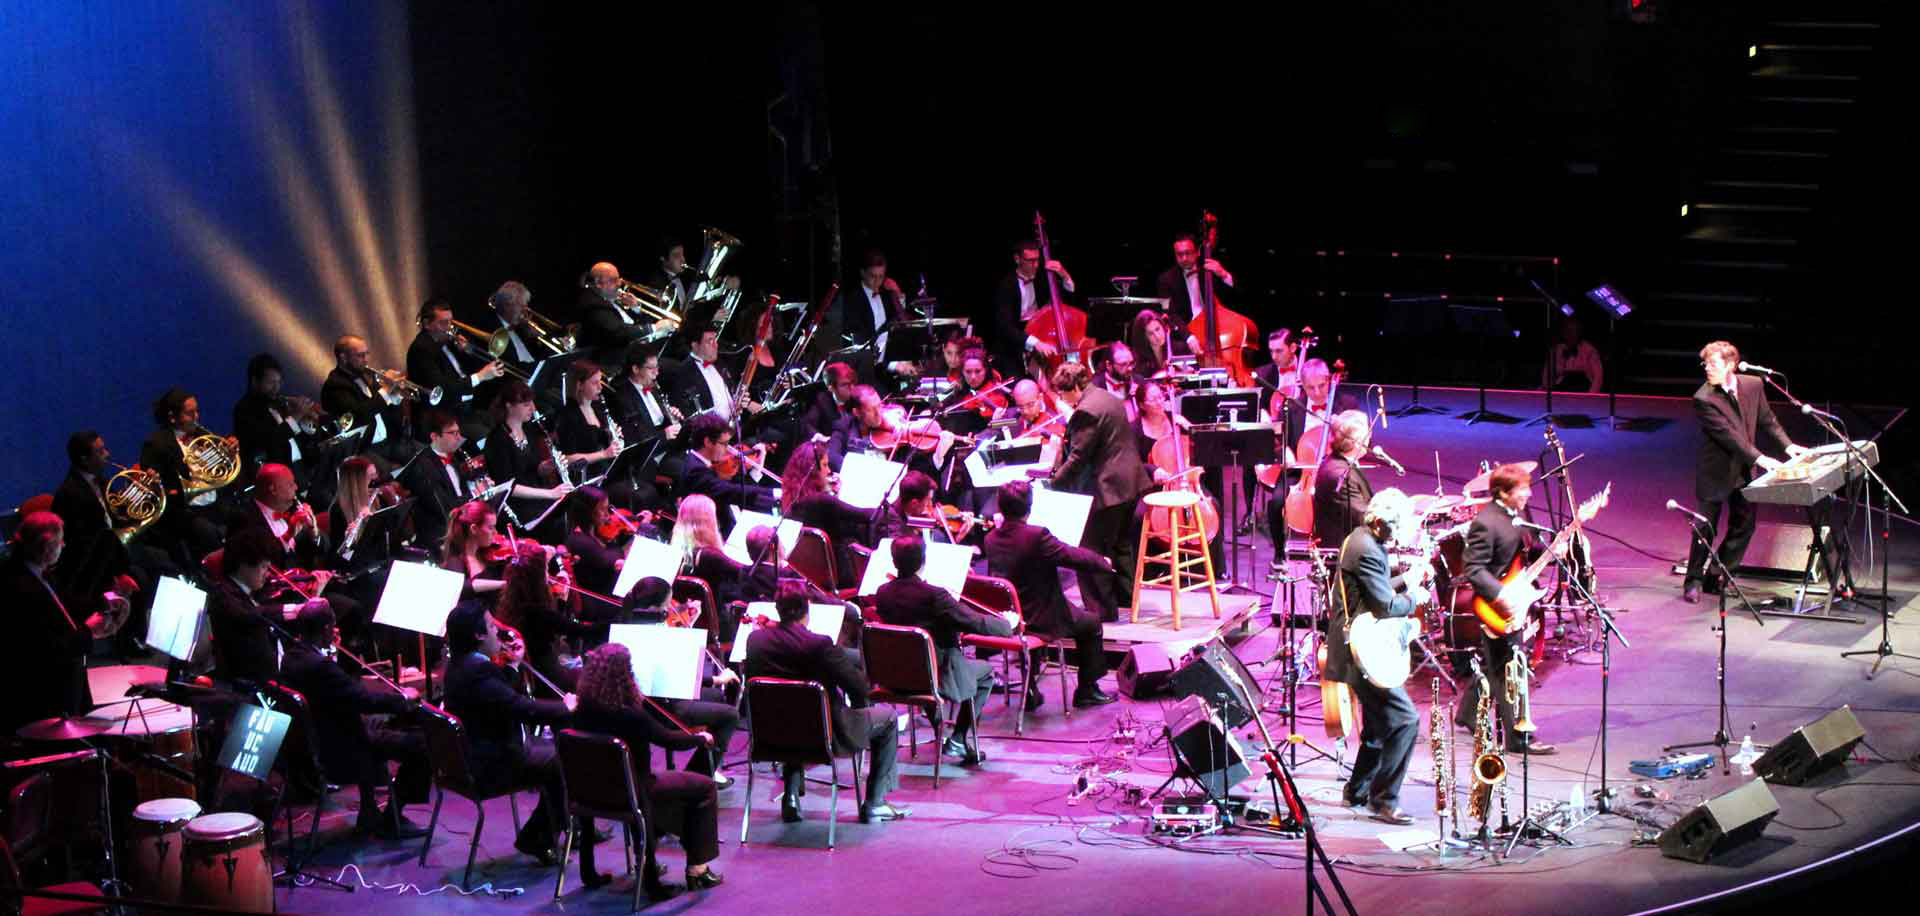 The WannaBeatles with Symphony Orchestra